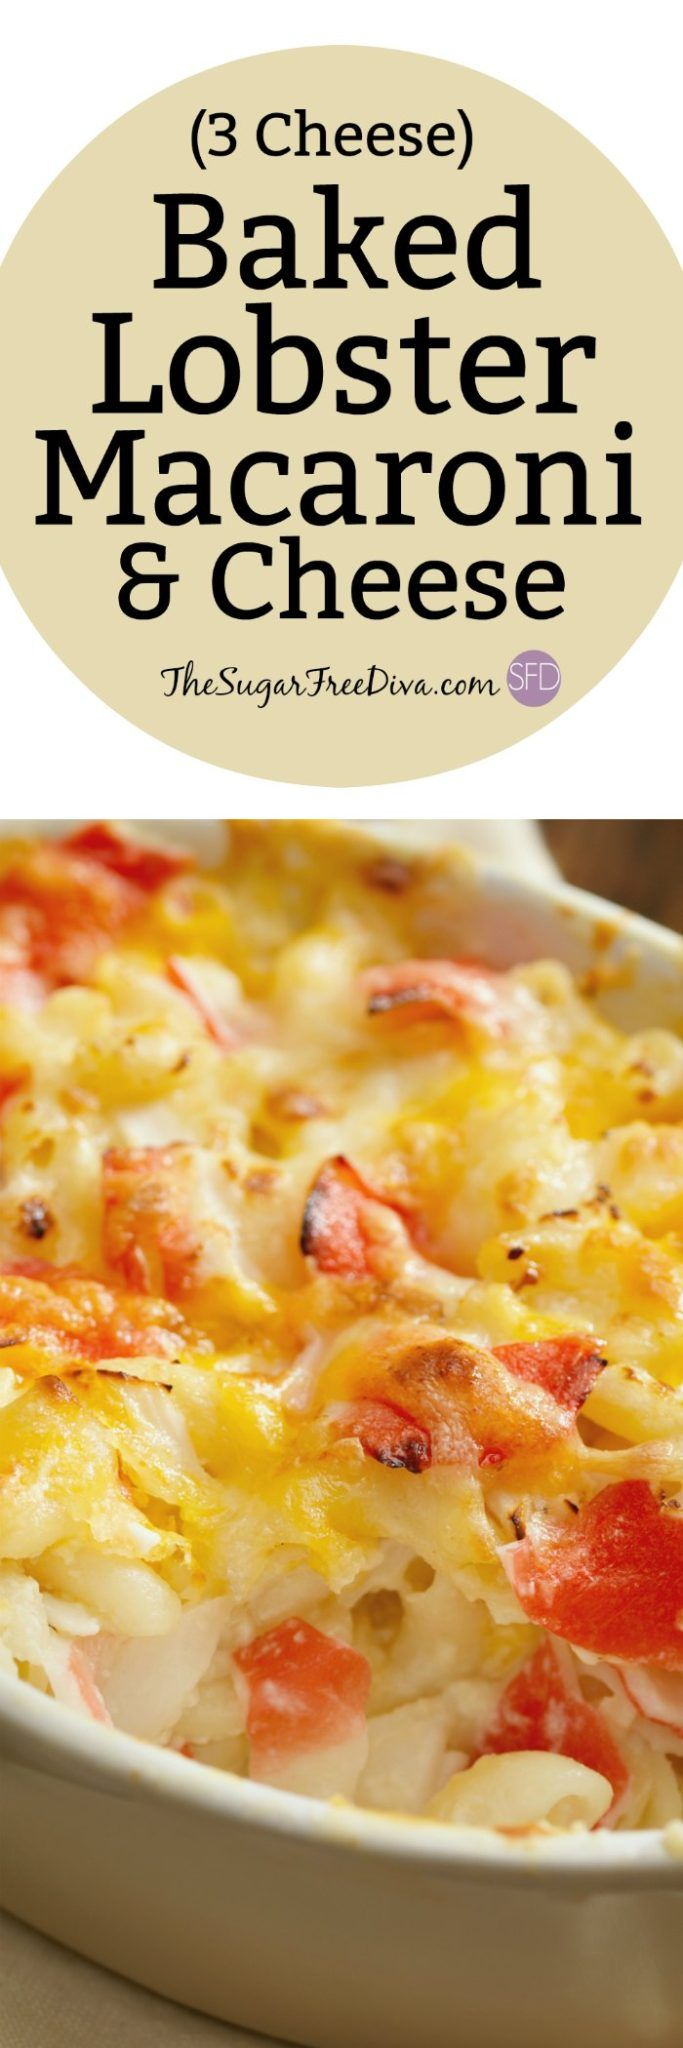 3 Cheese Lobster Macaroni and Cheese Recipe